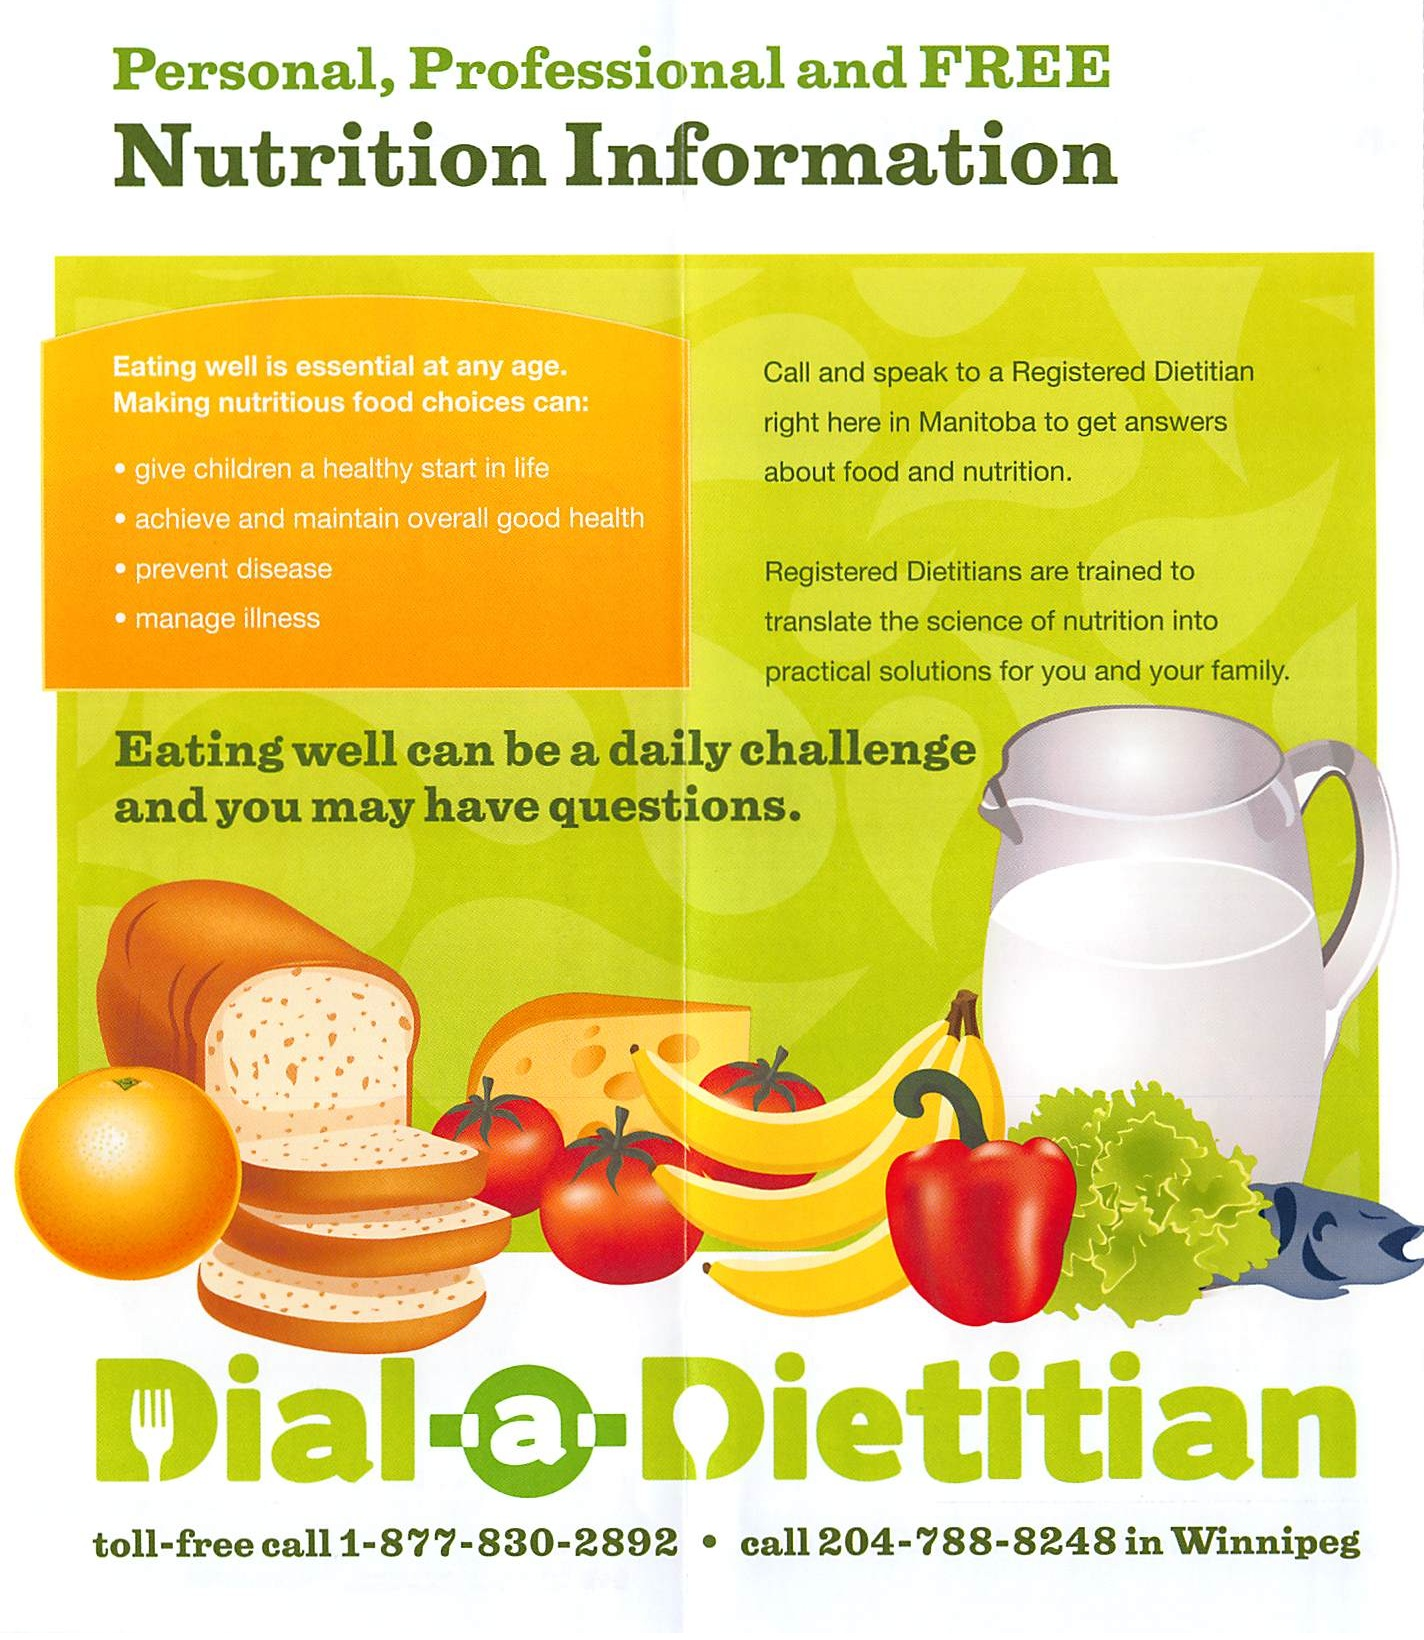 Dial-a-Dietitian - FREE Nutritional Information